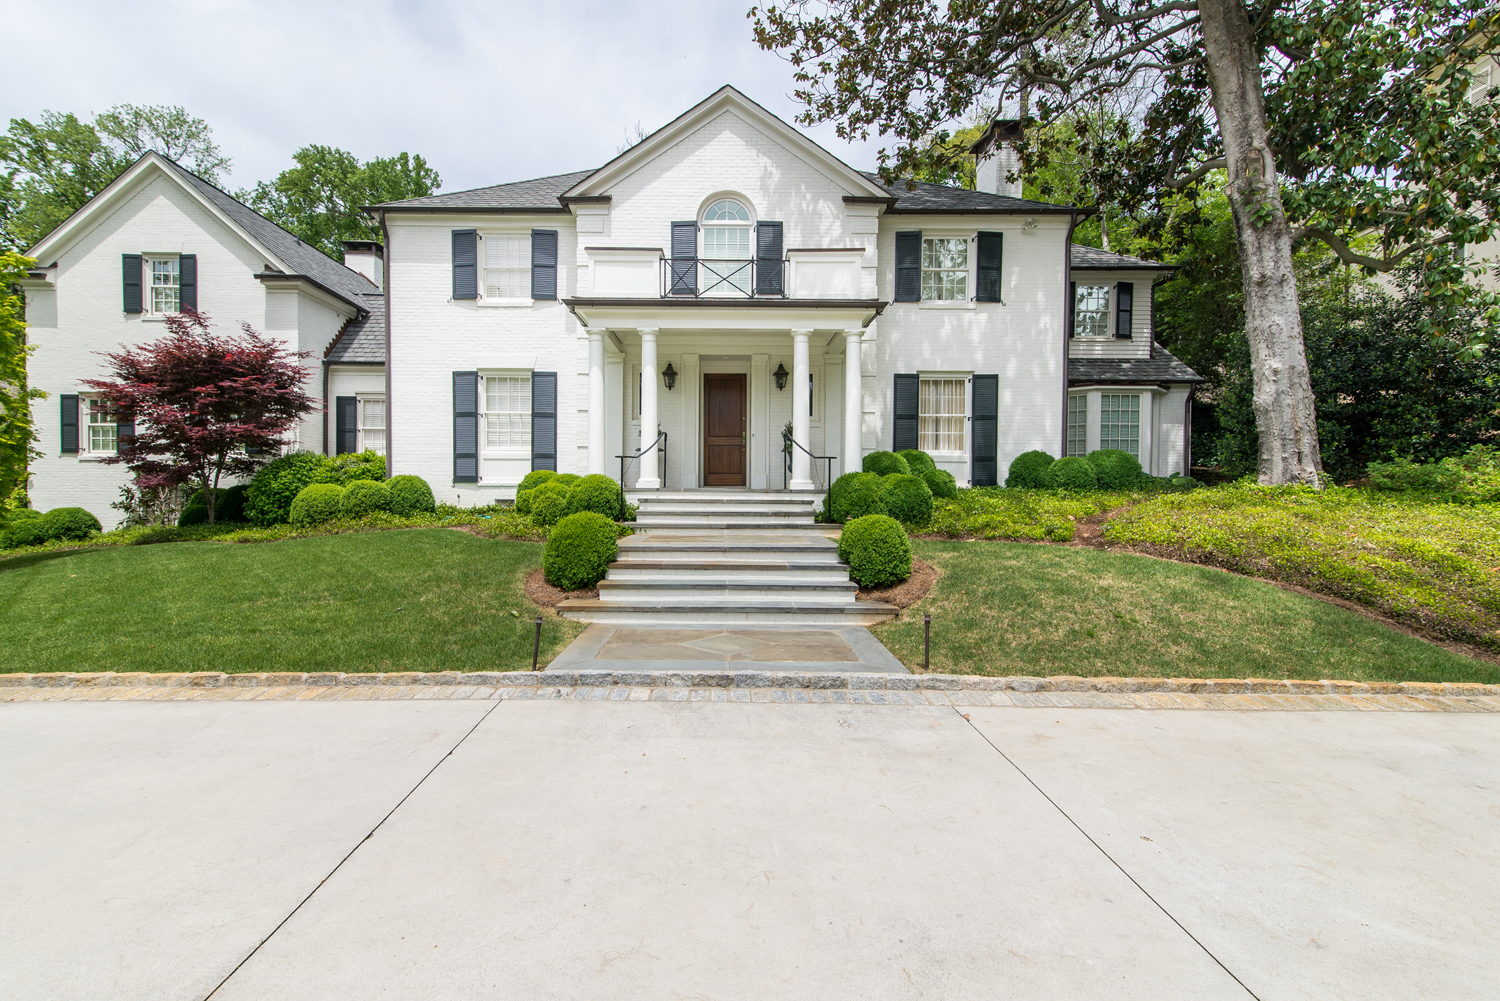 Actress Amy Adams Leased This House Located In Atlantas Prestigious Tuxedo Park While She Was Filming Trouble With The Curve